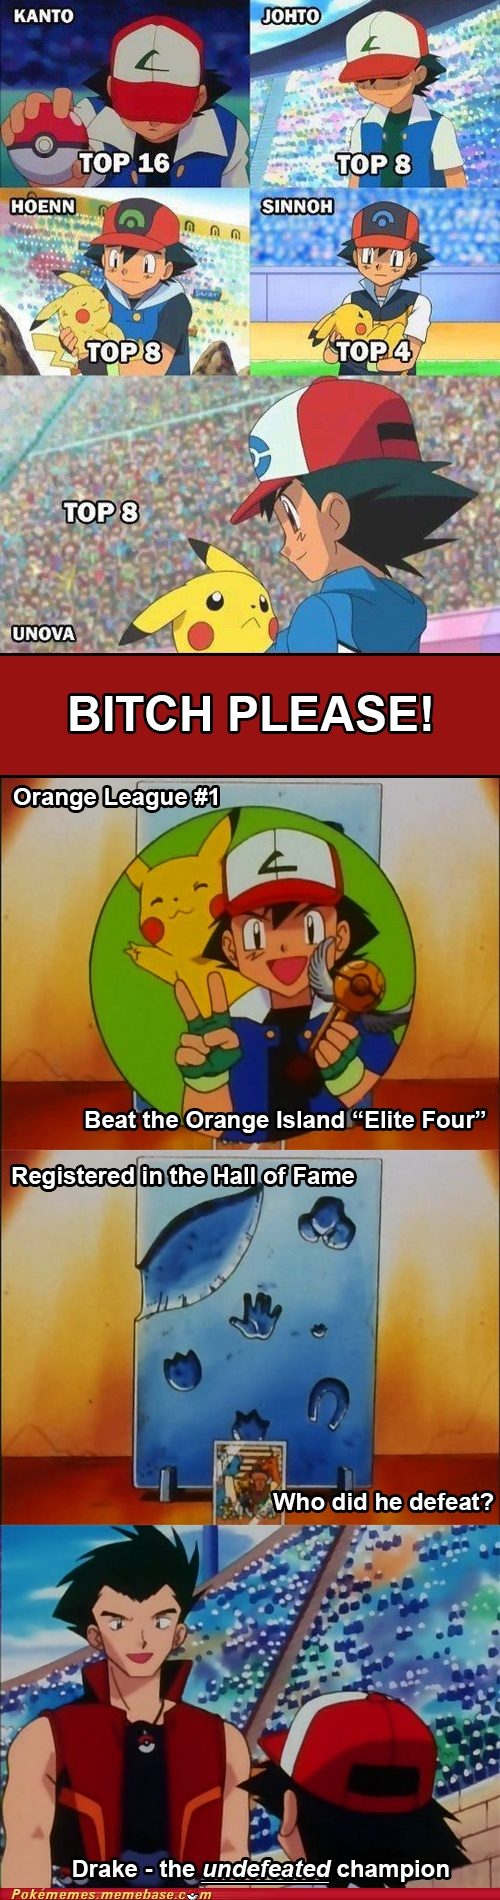 You Know, Ash DID Win a League